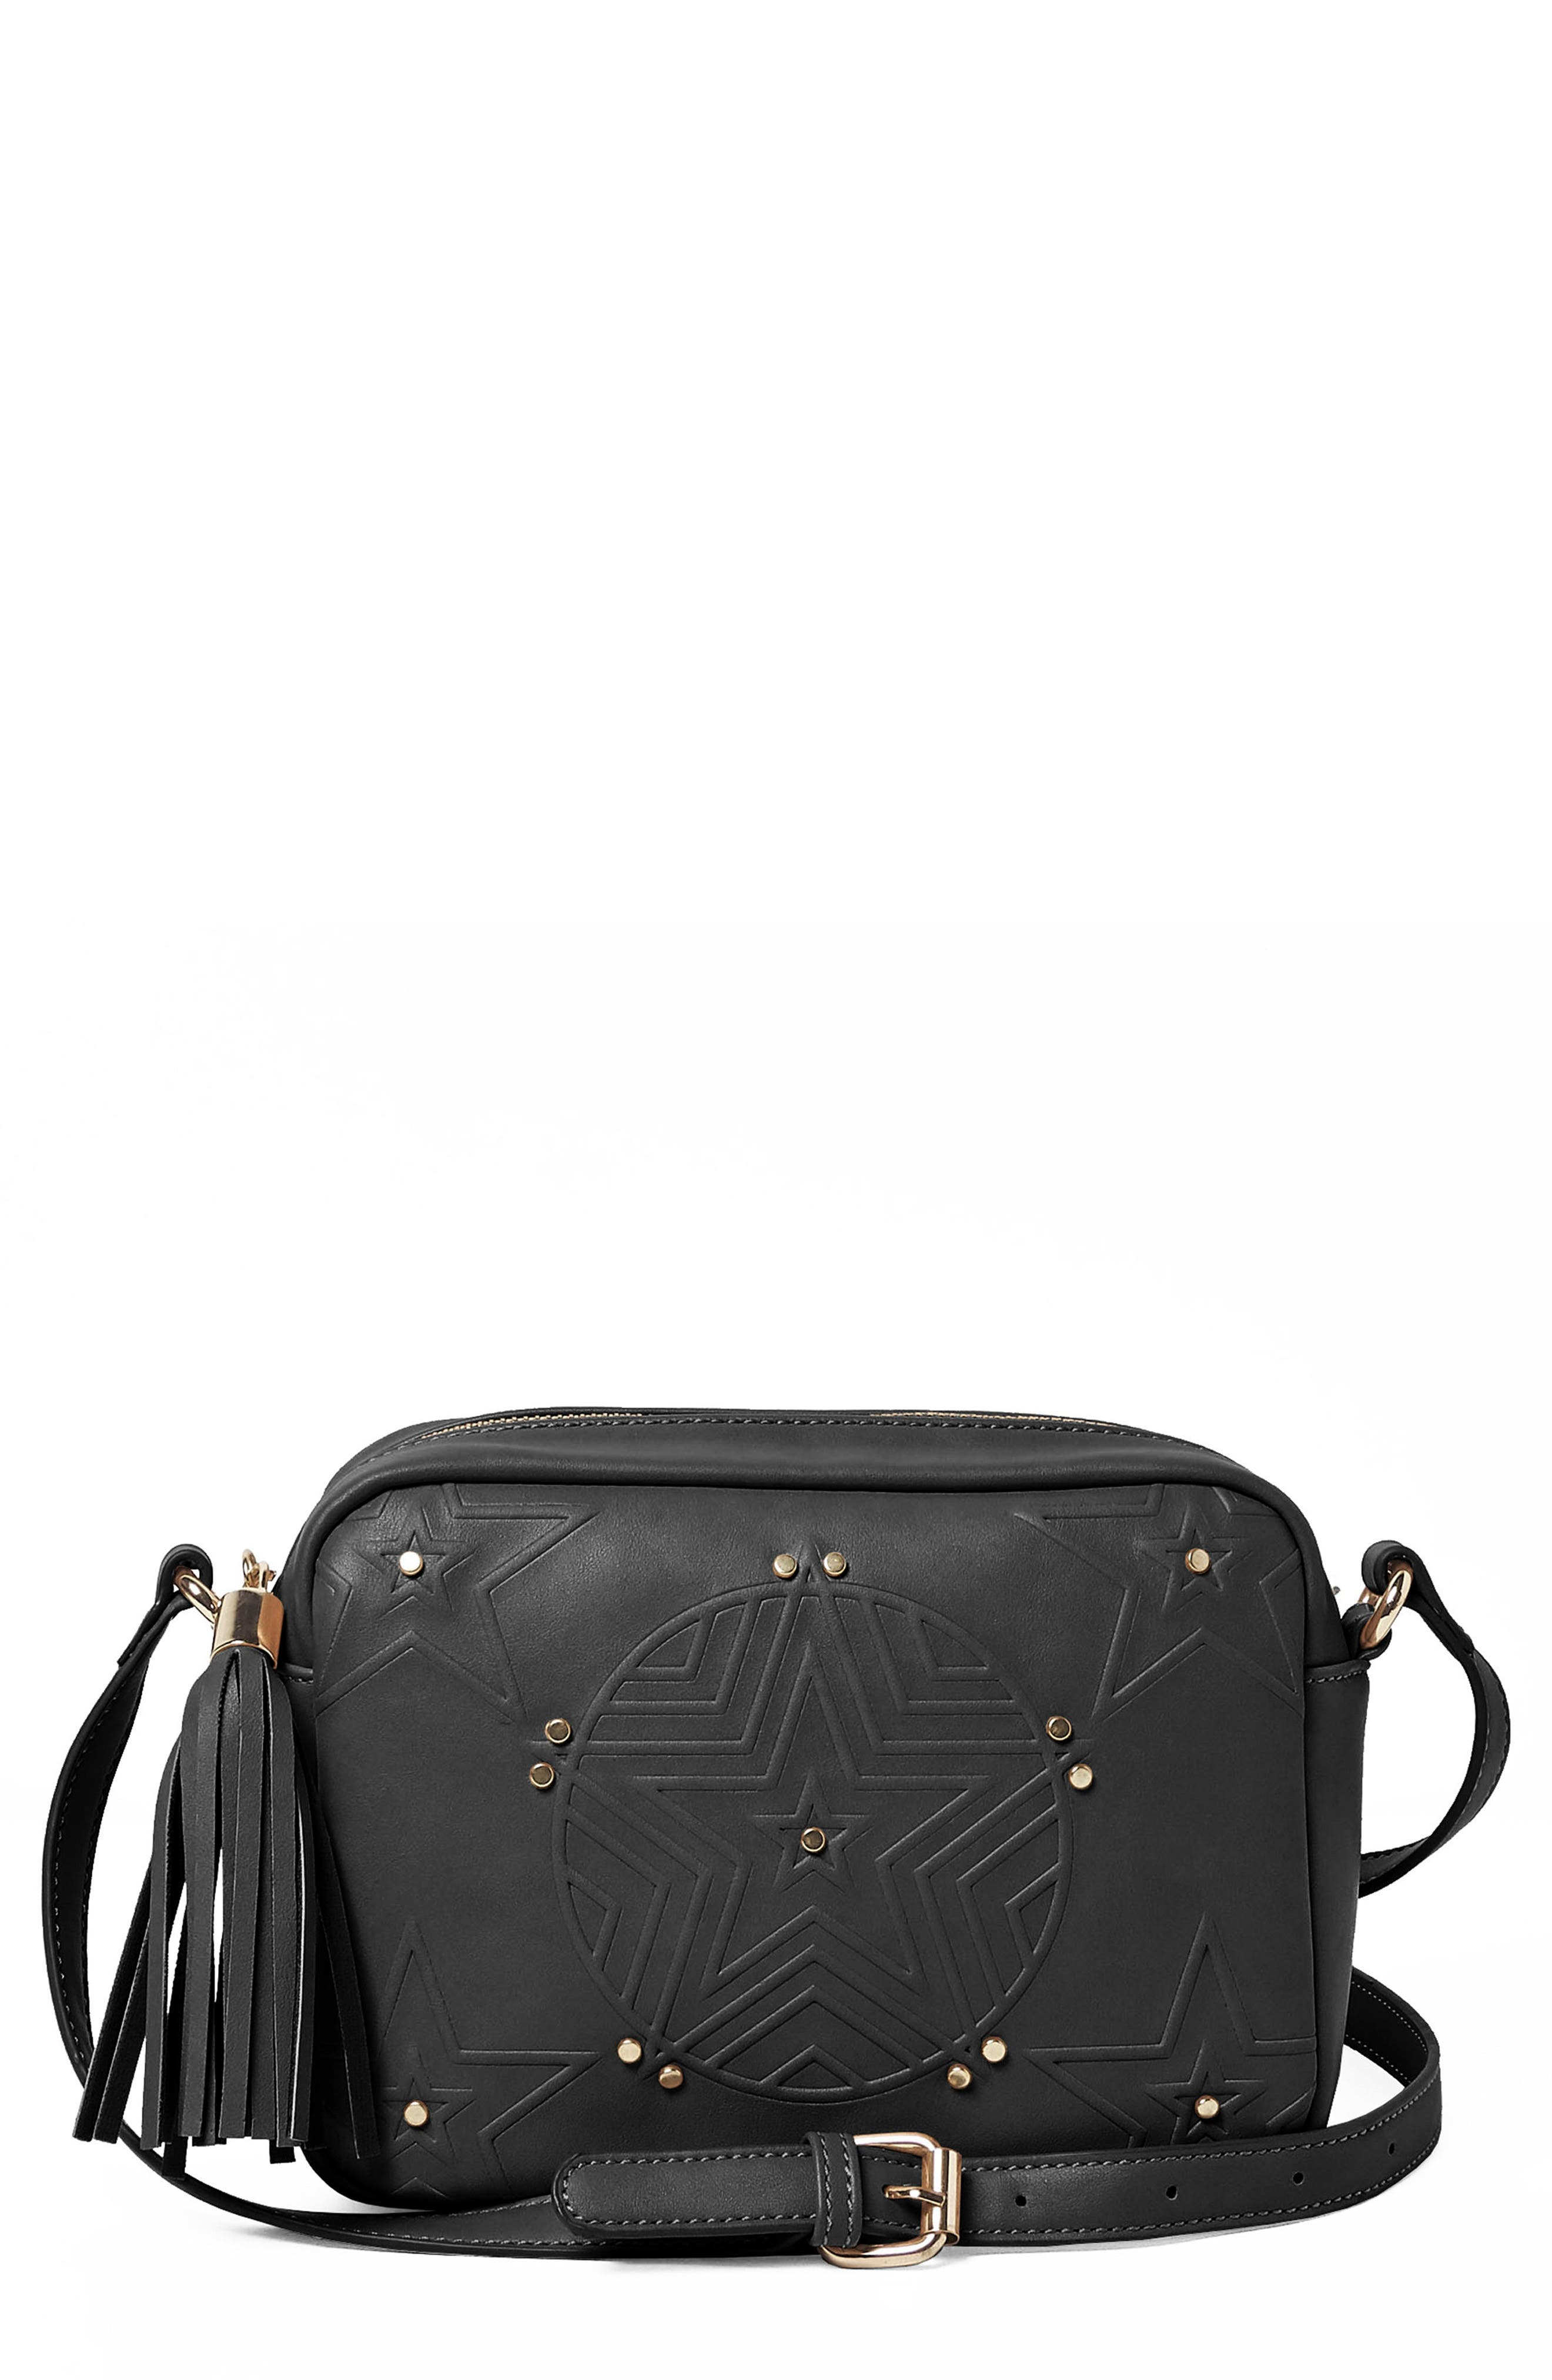 Urban Originals STARGAZER VEGAN LEATHER CROSSBODY BAG - BLACK